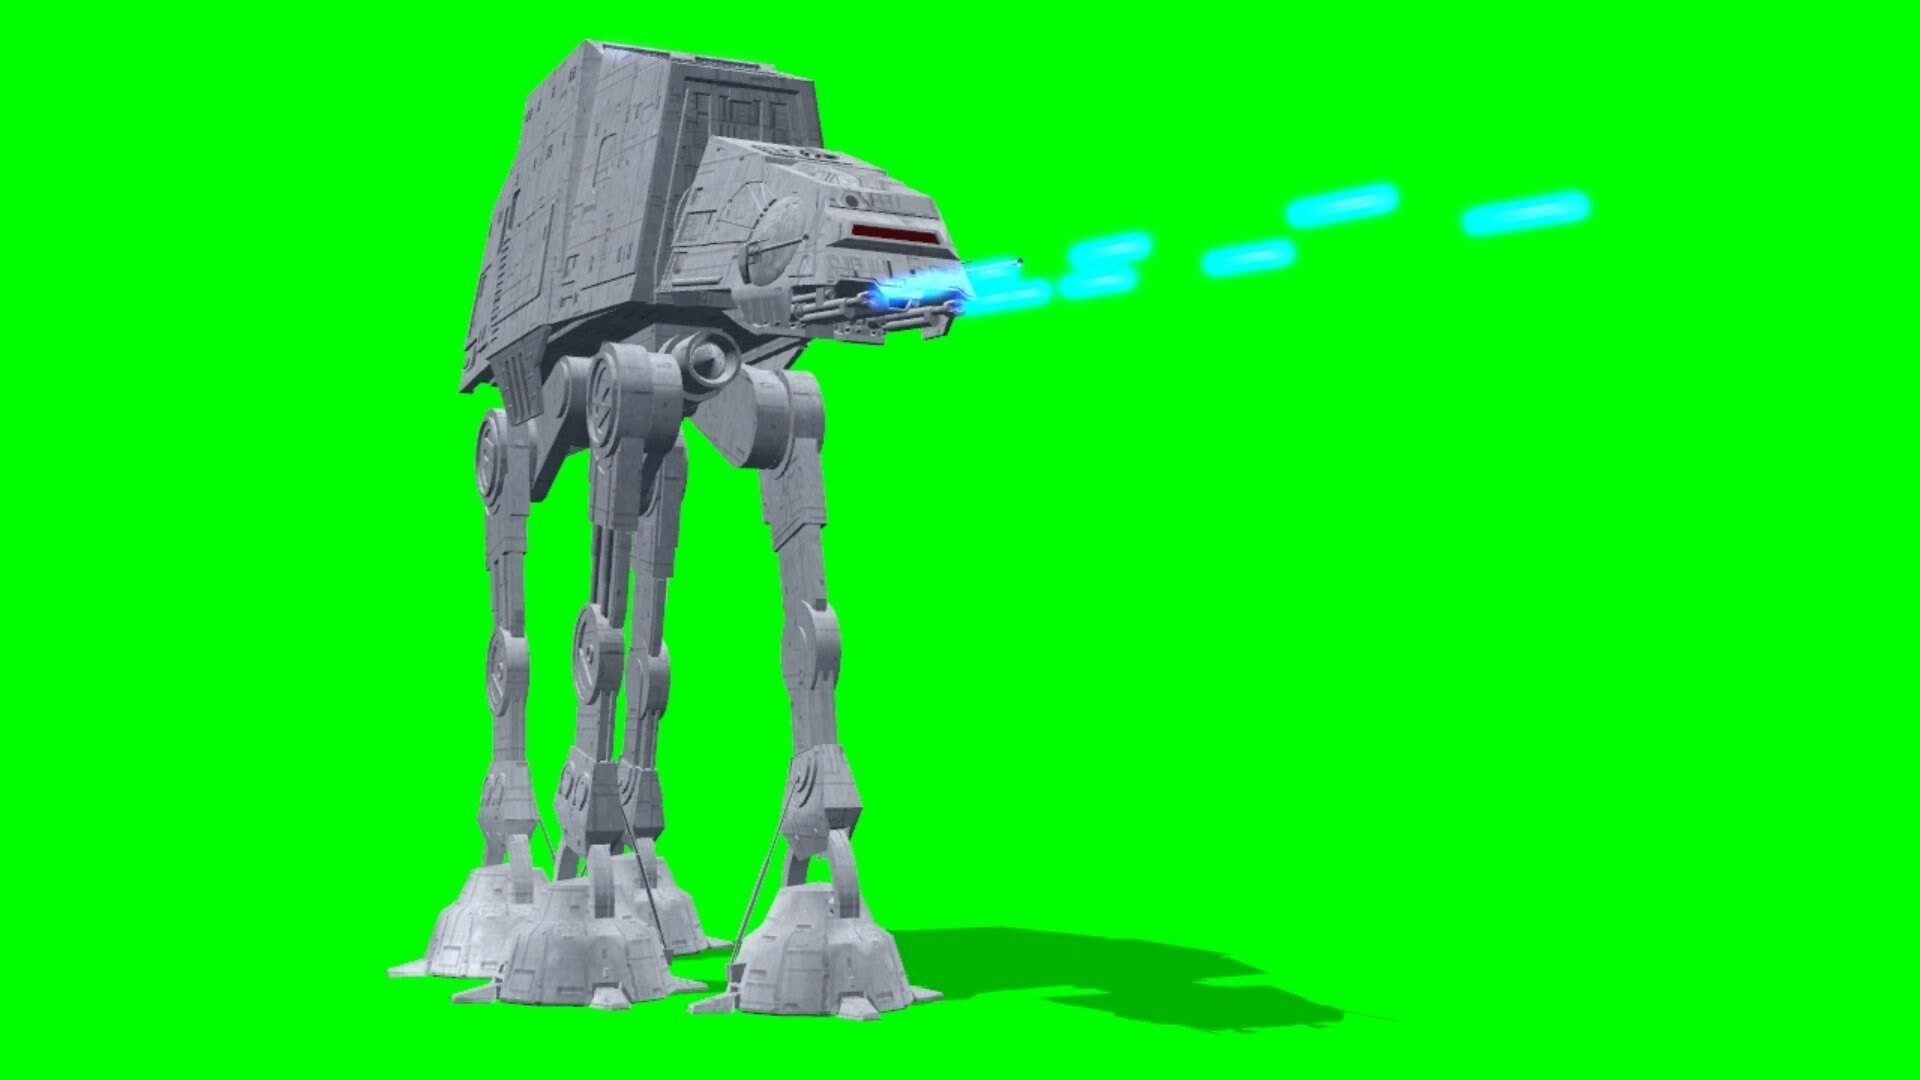 Star Wars Green Screen Backgrounds (61+ images)